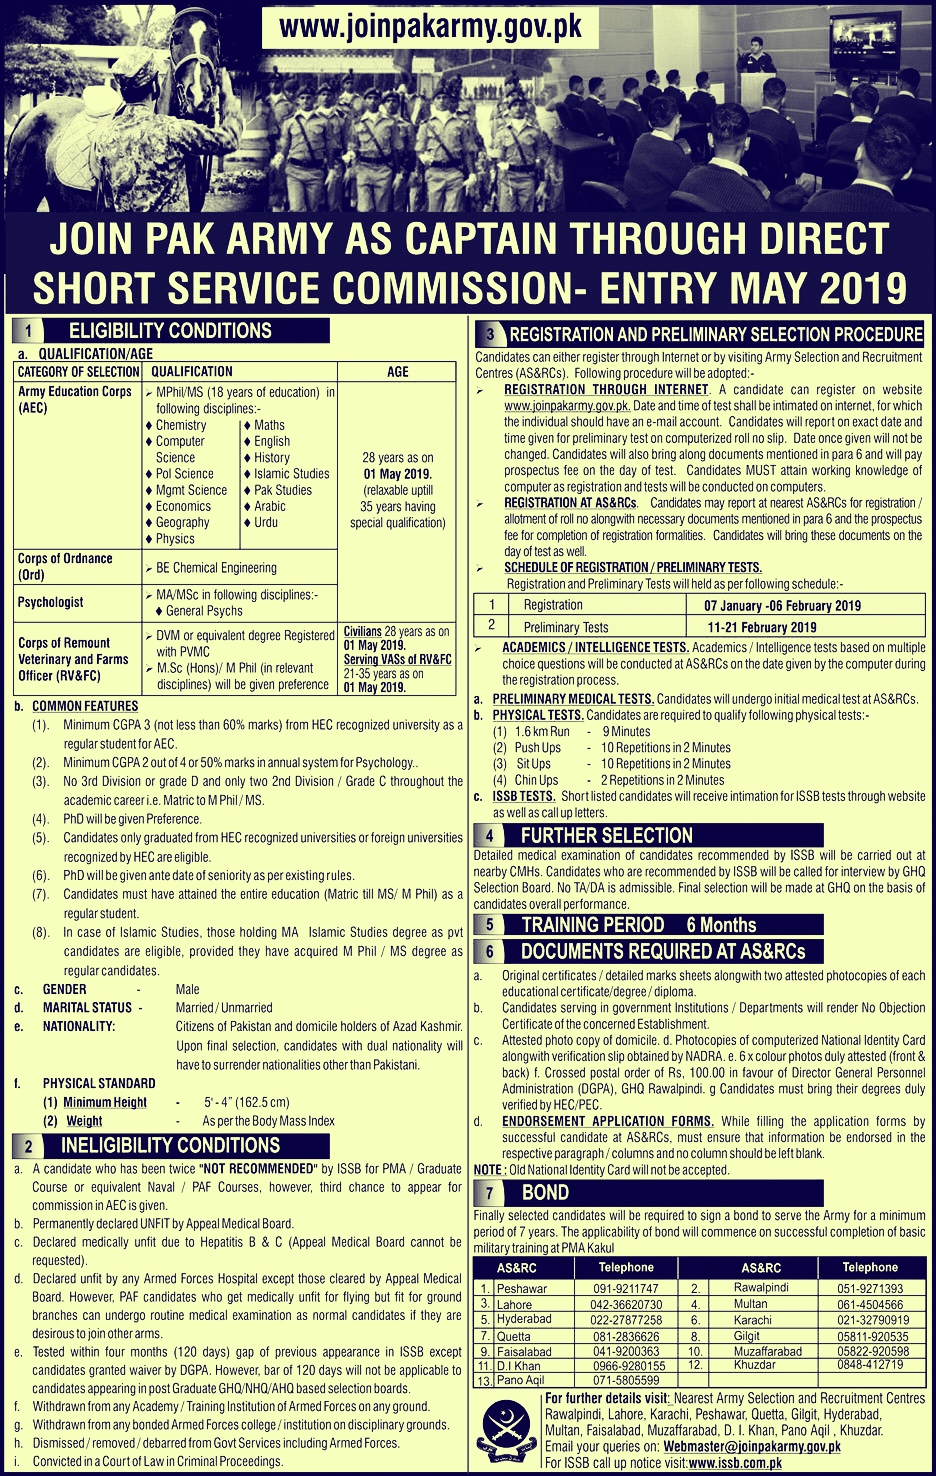 Join Pak Army as Captain 2019 - Online Apply